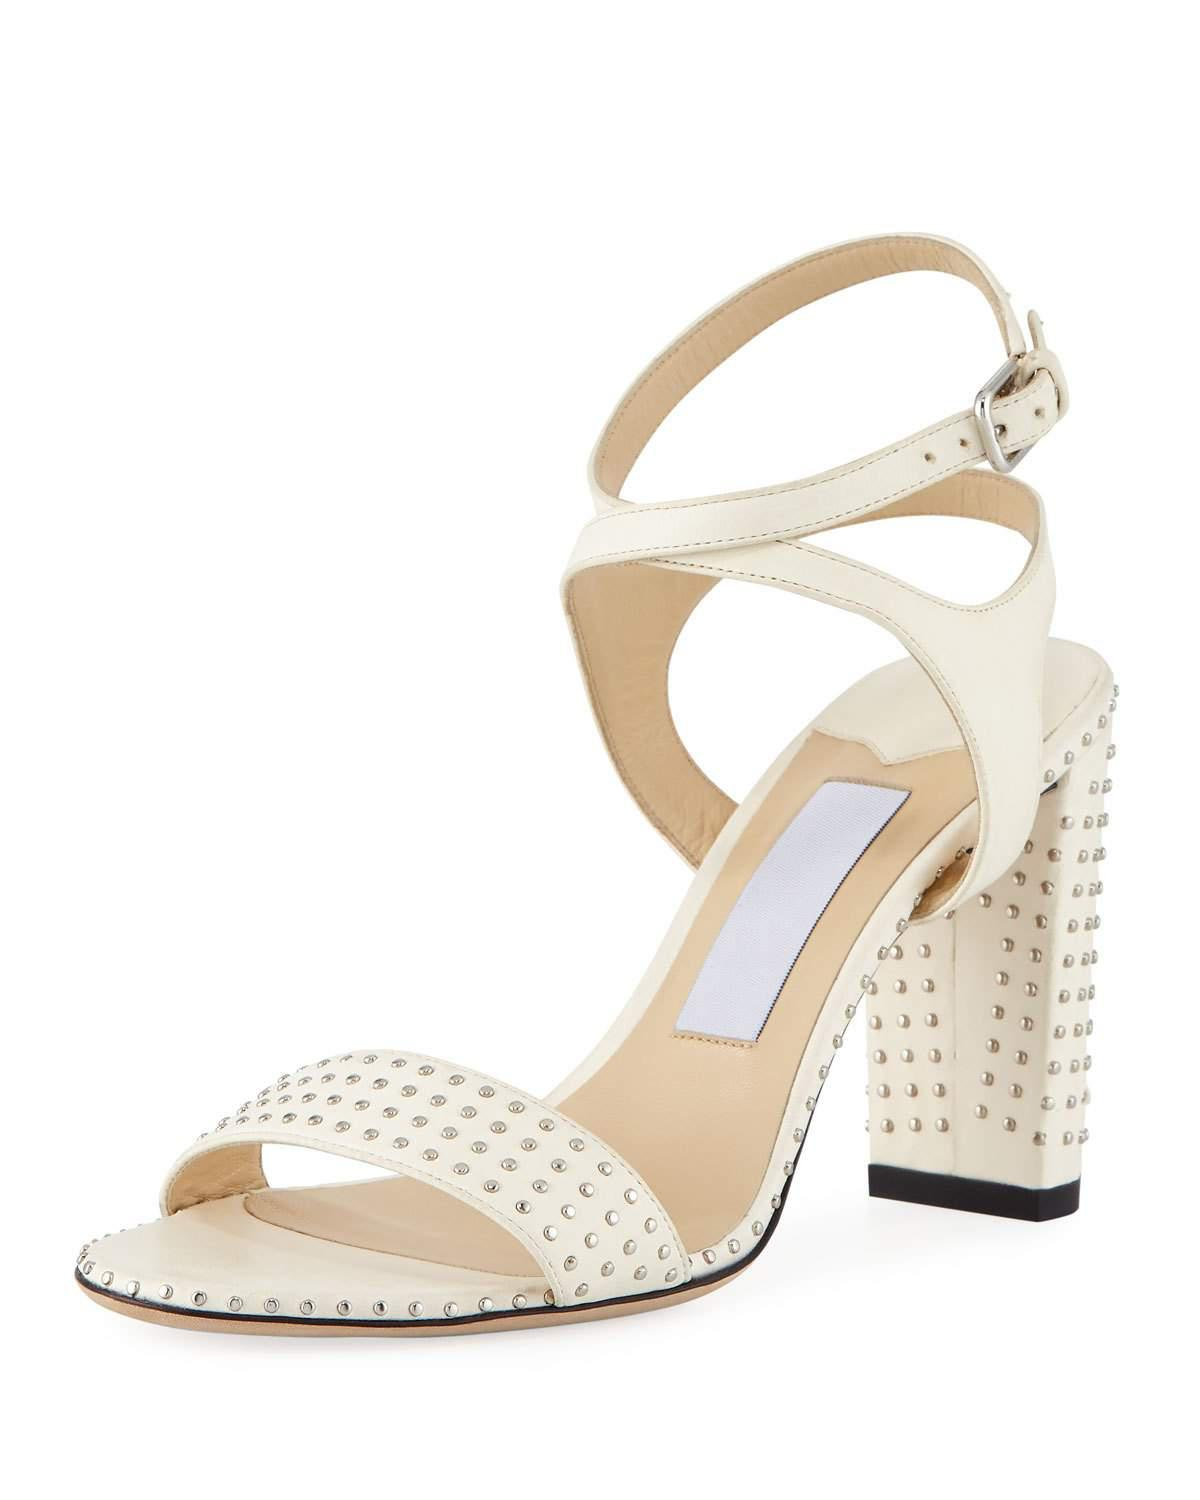 Jimmy choo Women's Marine 85 Micro-Studded Leather High-Heel Sandals Vm9D4t